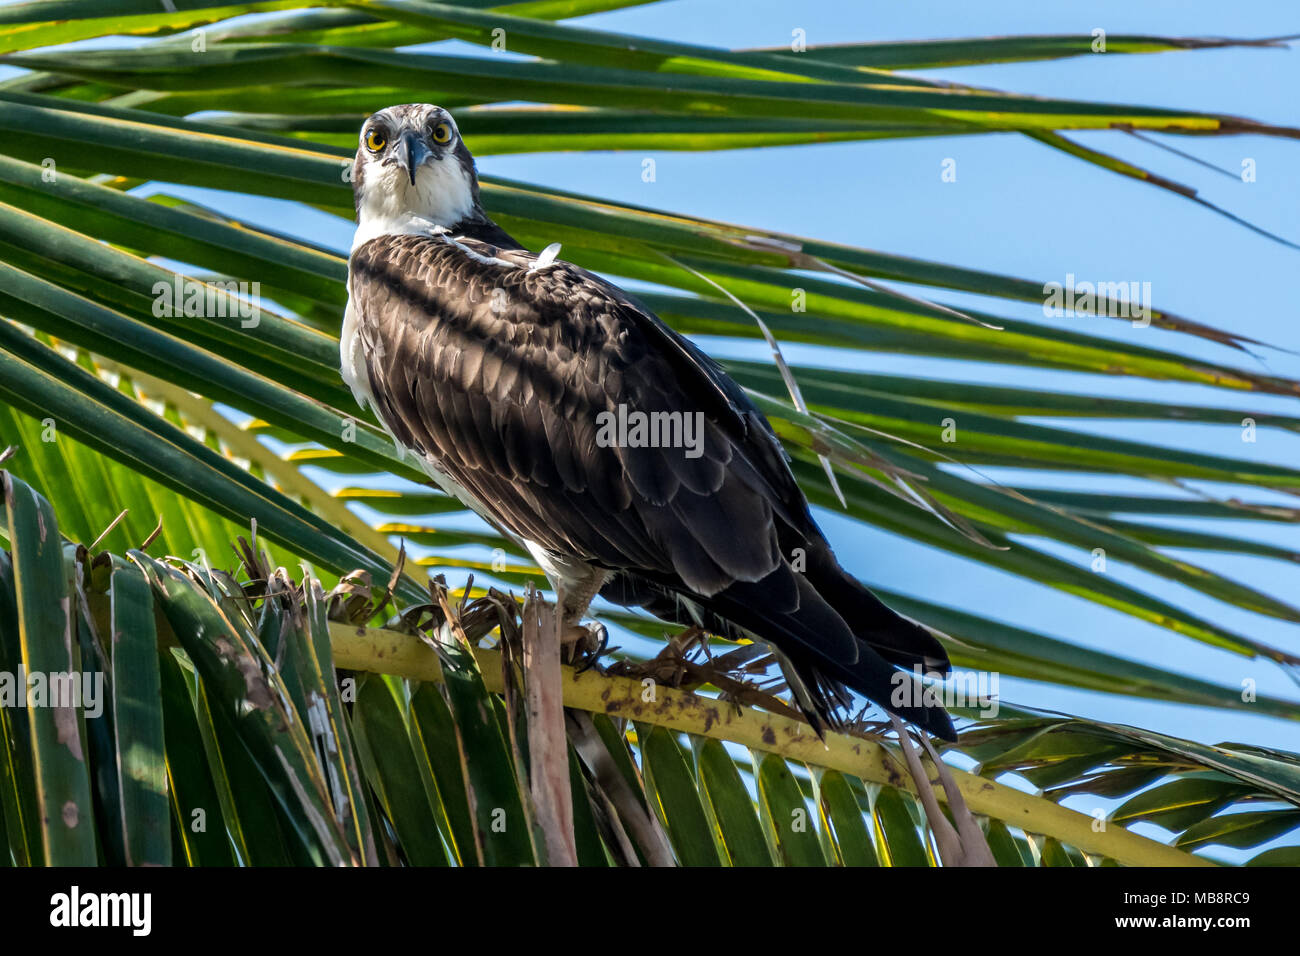 osprey pandion haliaetus perched in palm tree near the. Black Bedroom Furniture Sets. Home Design Ideas